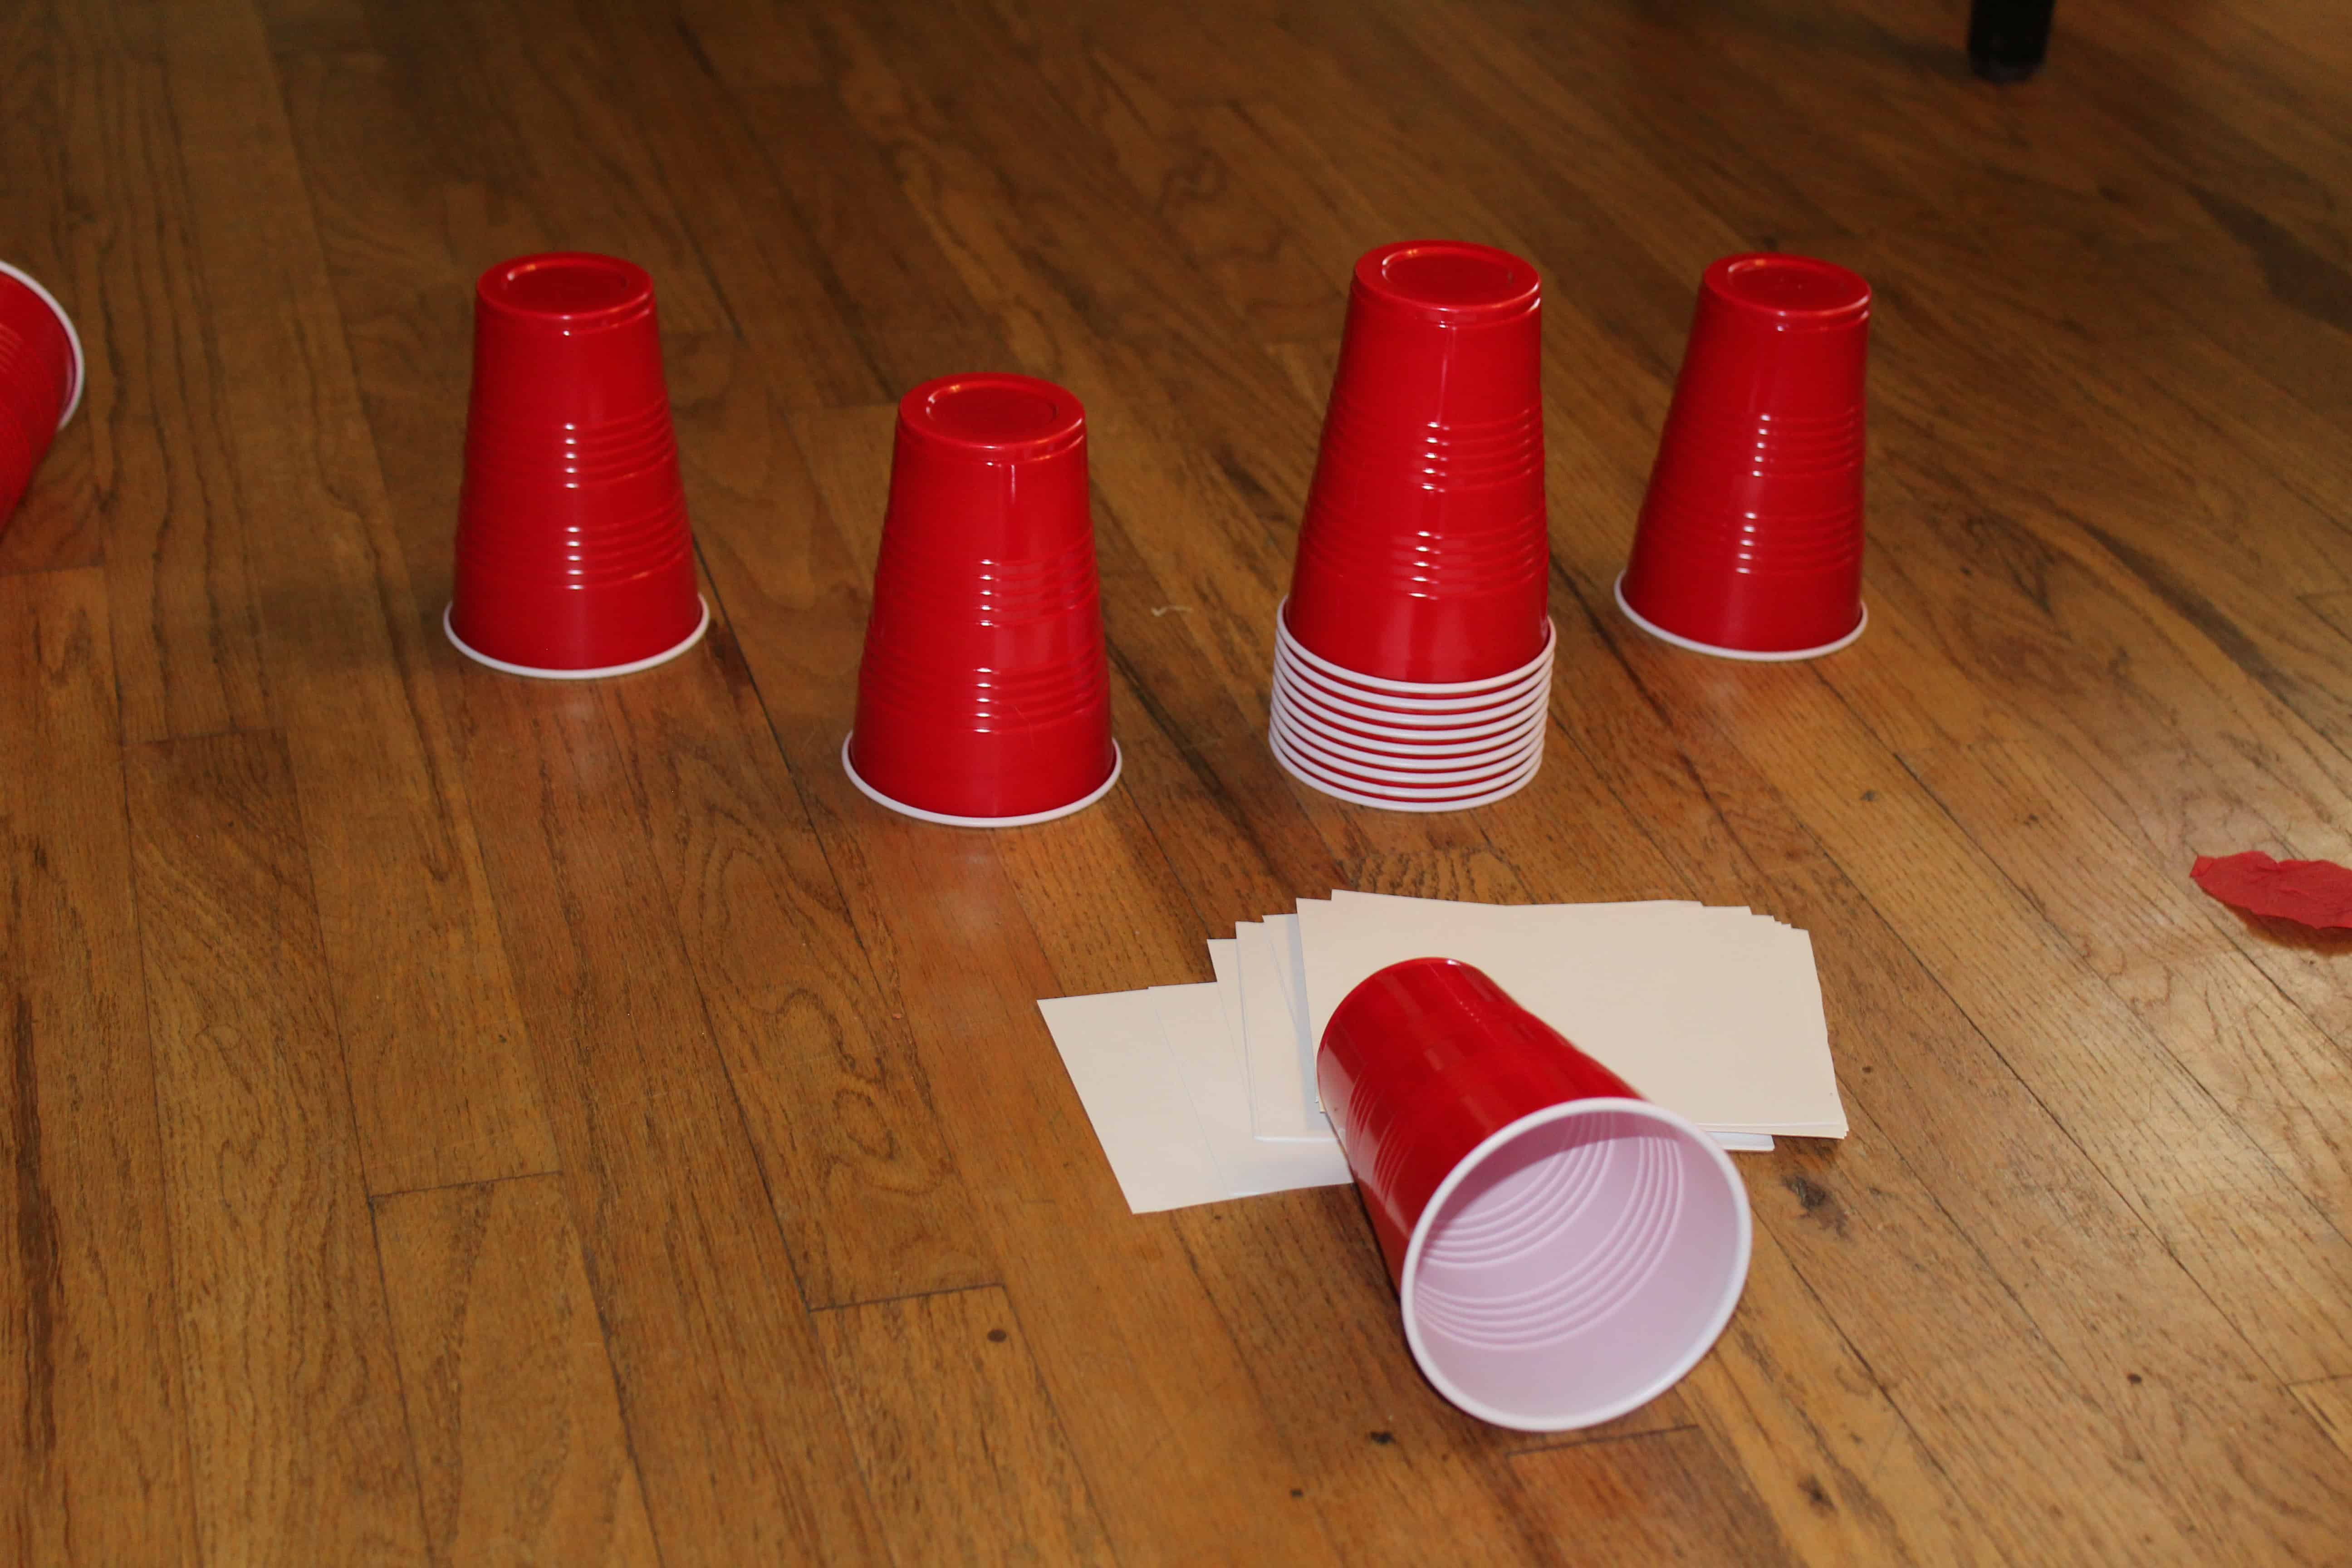 red solo cups and small pieces of paper sitting on the floor